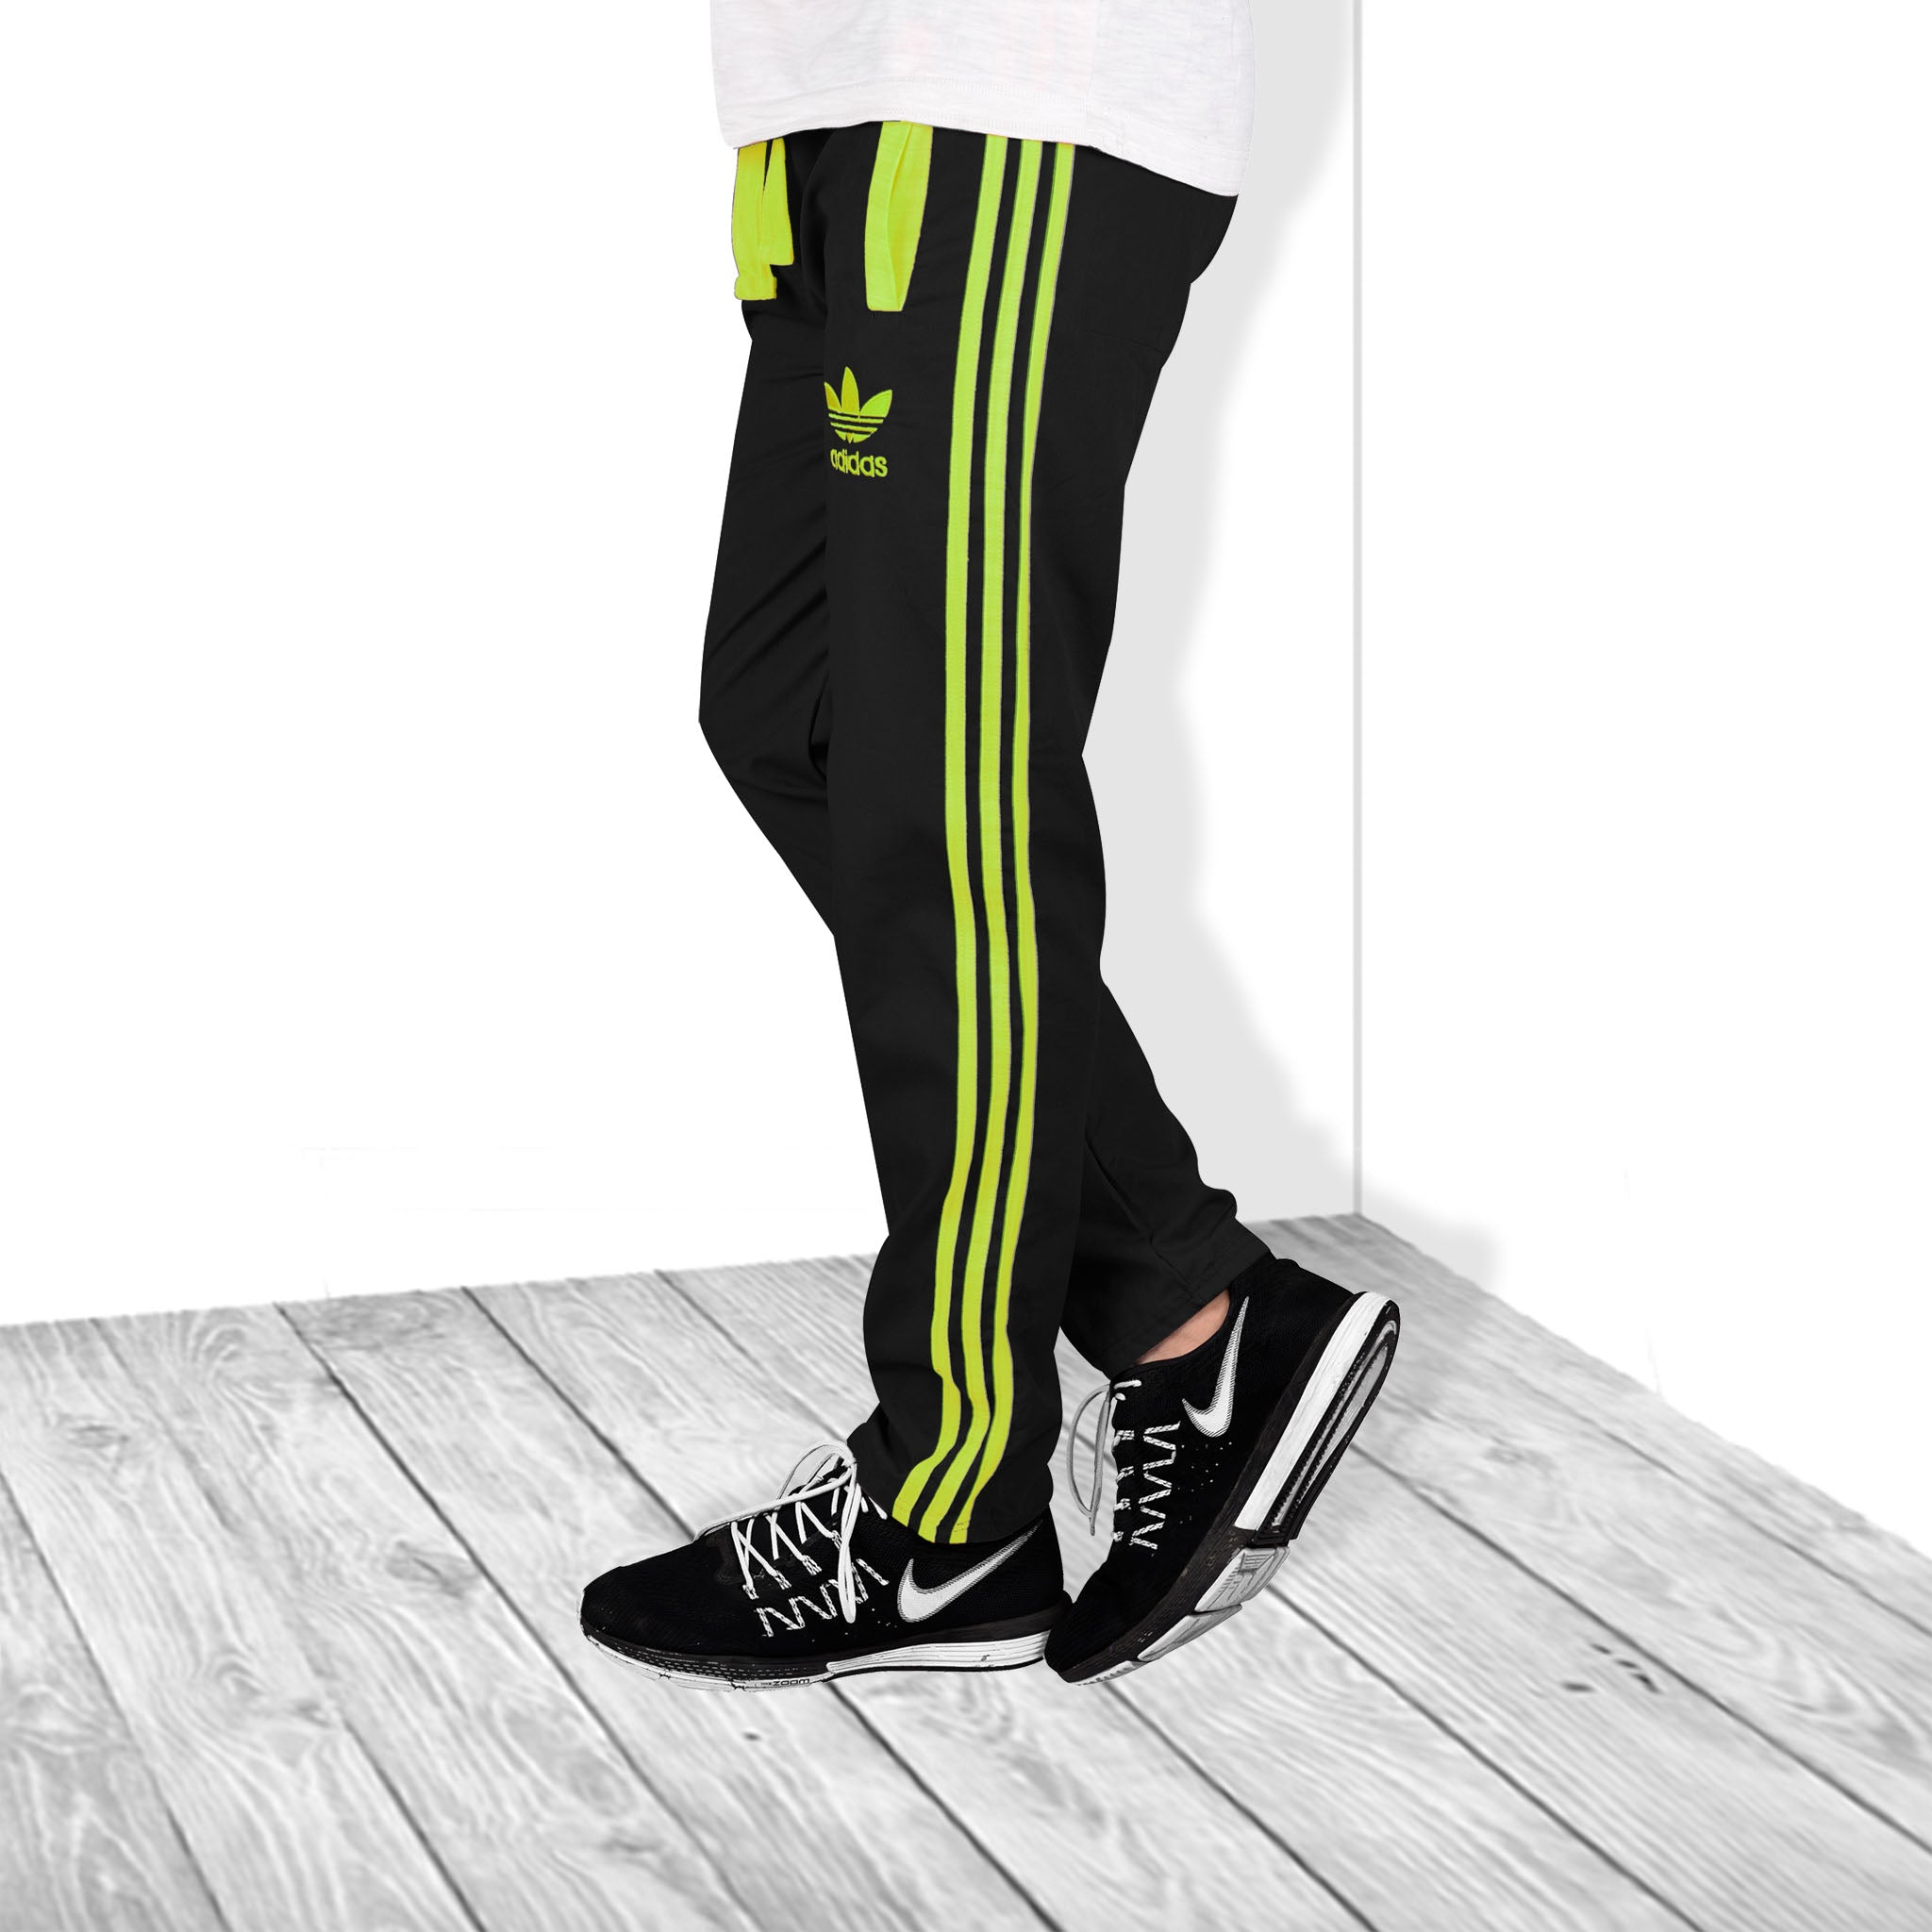 Adidas Cotton Trouser For Men-Black With Parrot Stripe-BE5307